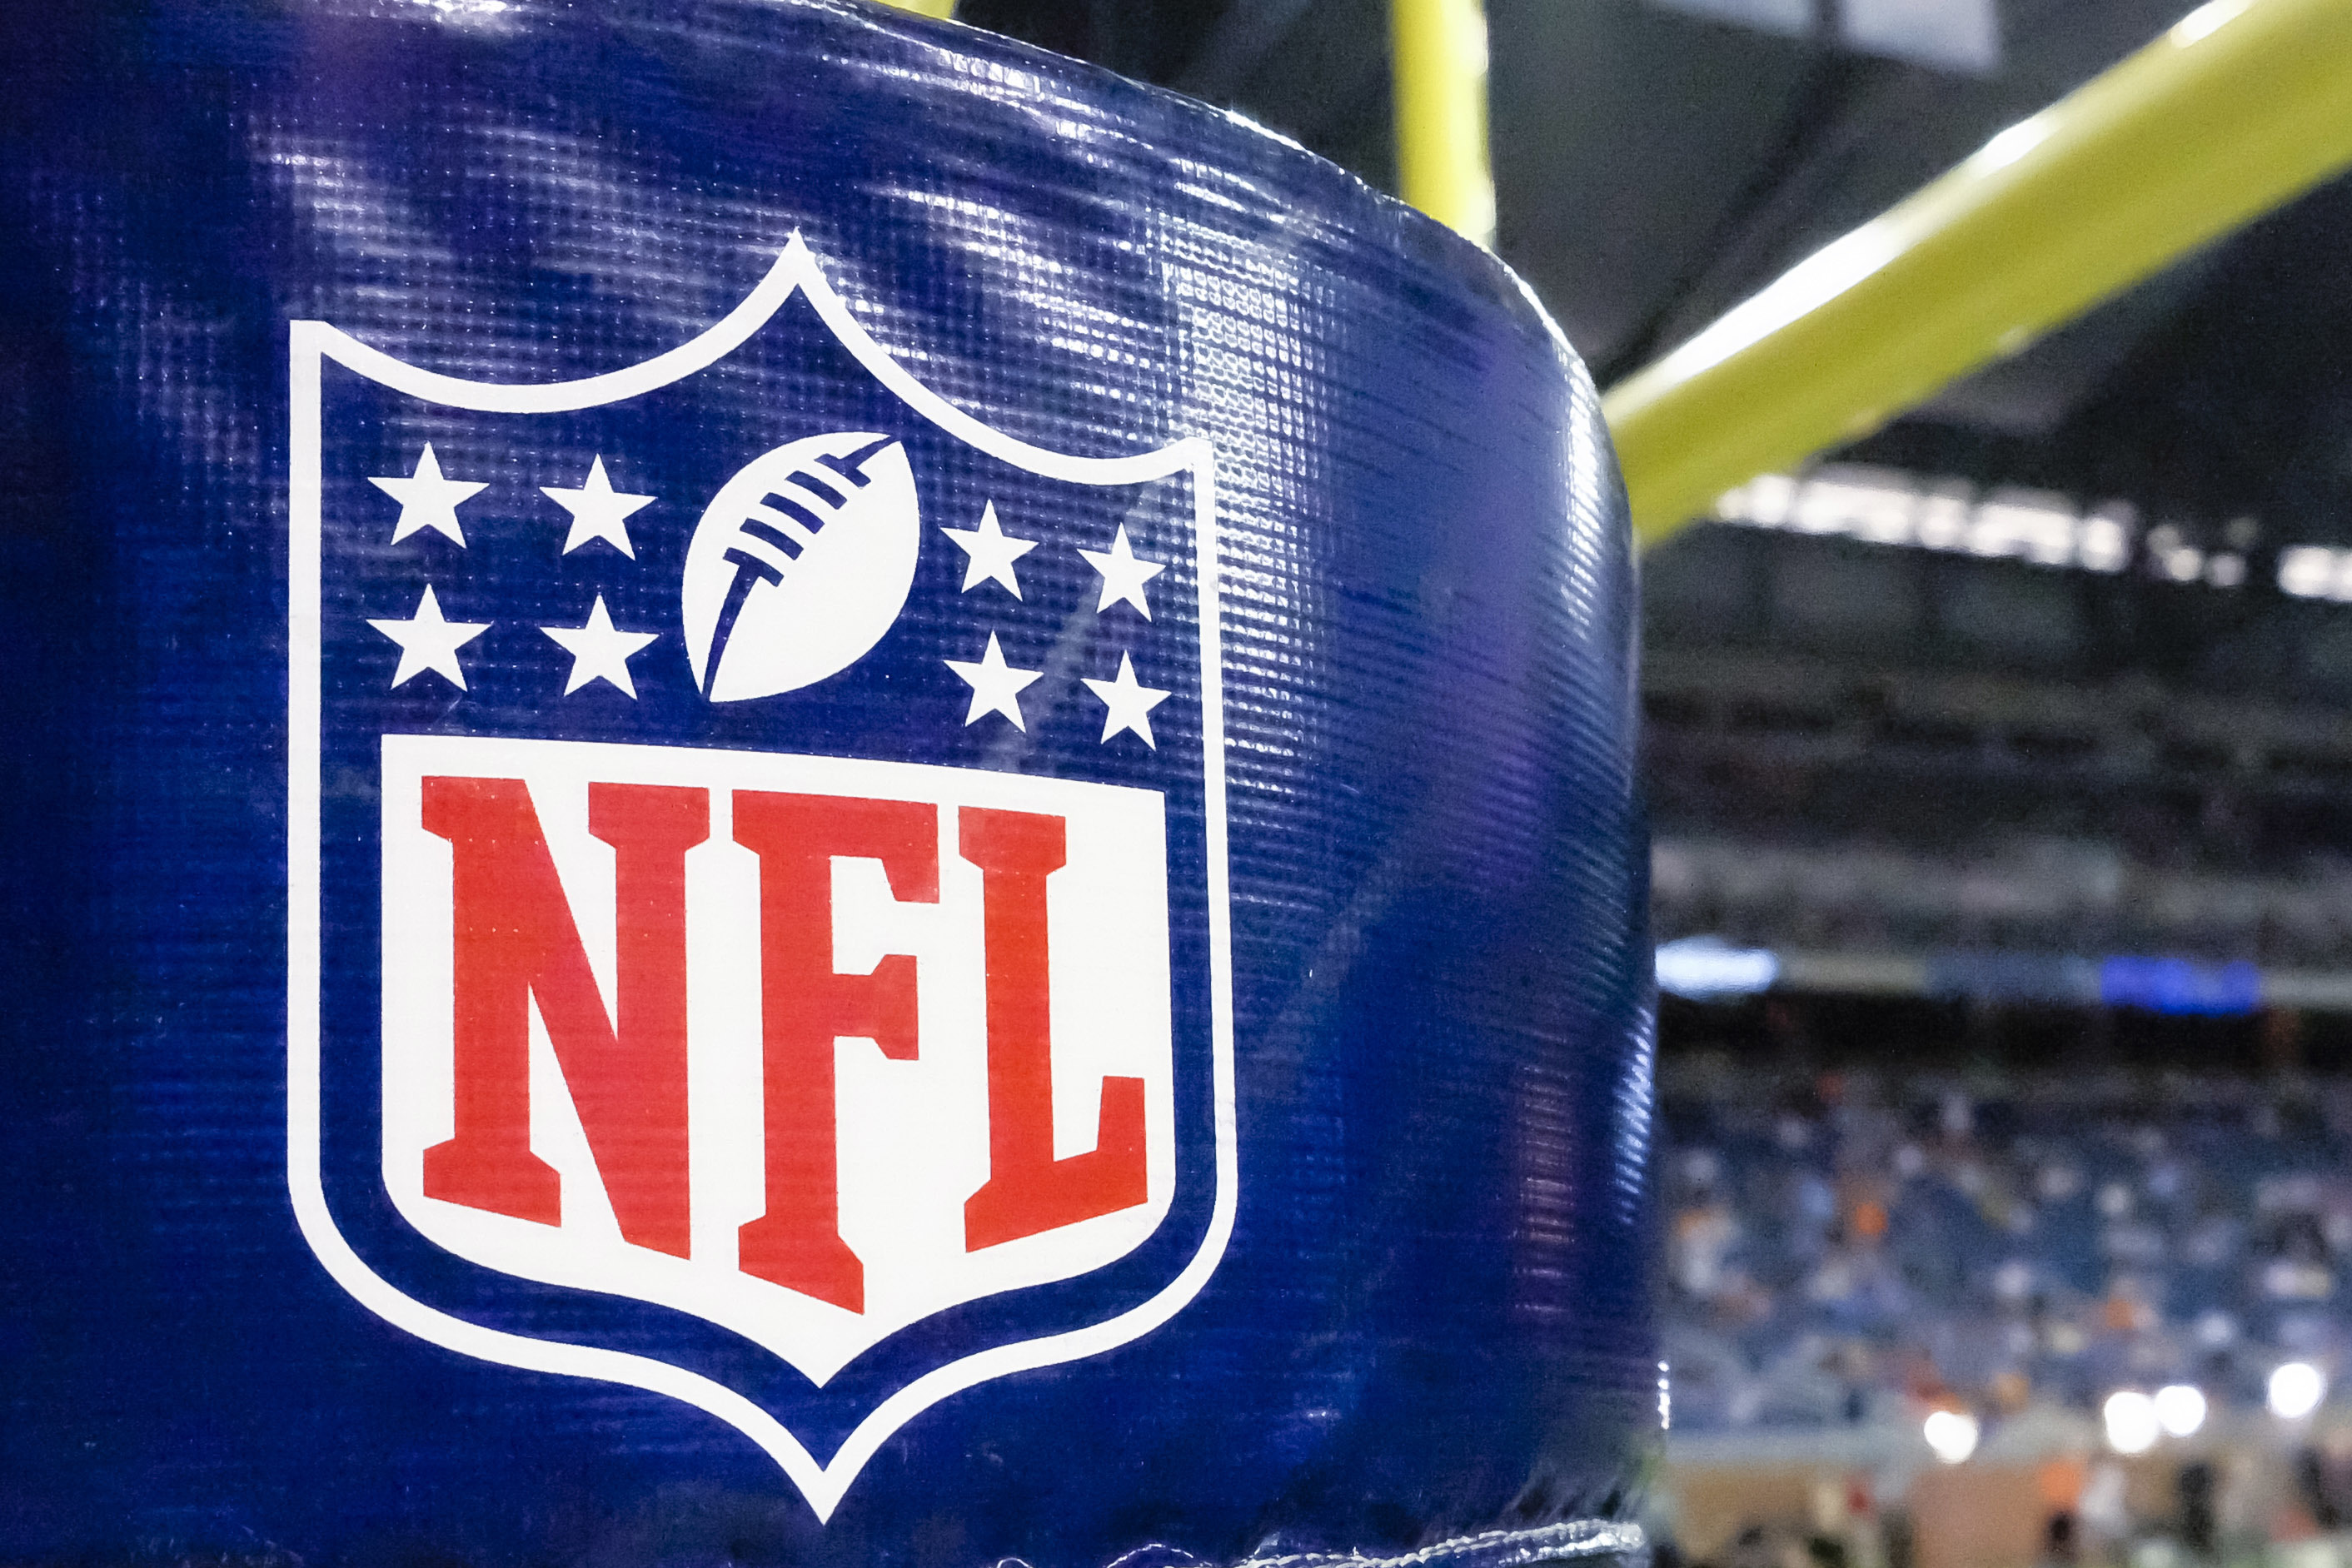 FILE - This Aug. 9, 2014 file photo shows an NFL logo on a goal post padding before a preseason NFL football game between the Detroit Lions and the Cleveland Browns at Ford Field in Detroit. Sports Illustrated reported in October 2016 that the NFL is stri